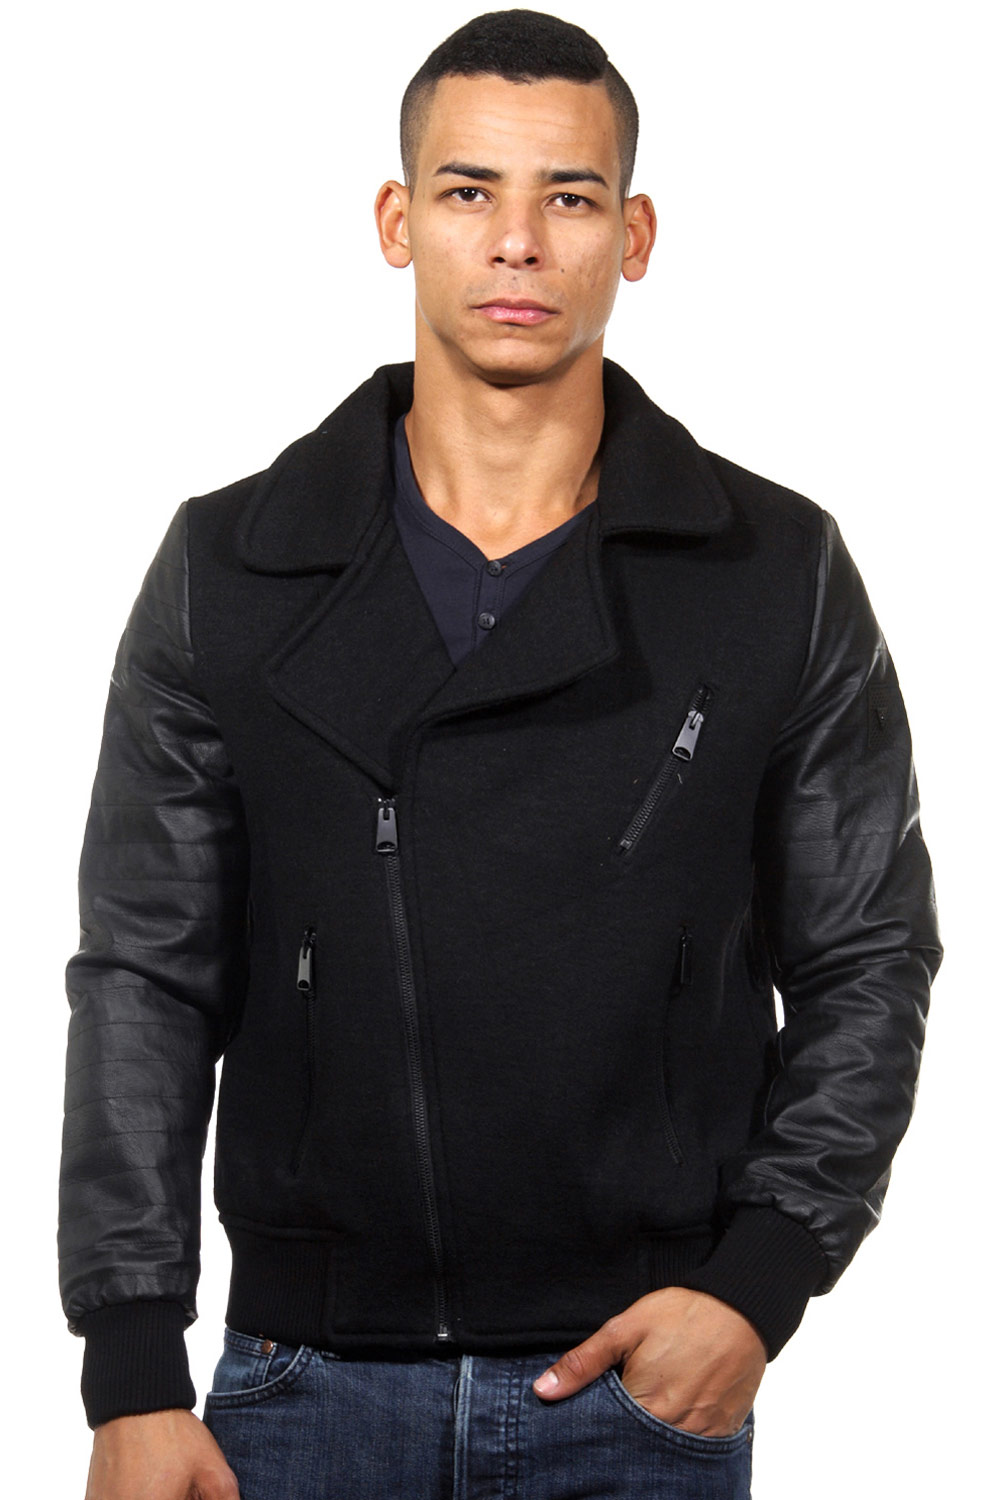 OPEN jacket revers collar slim fit at oboy.com